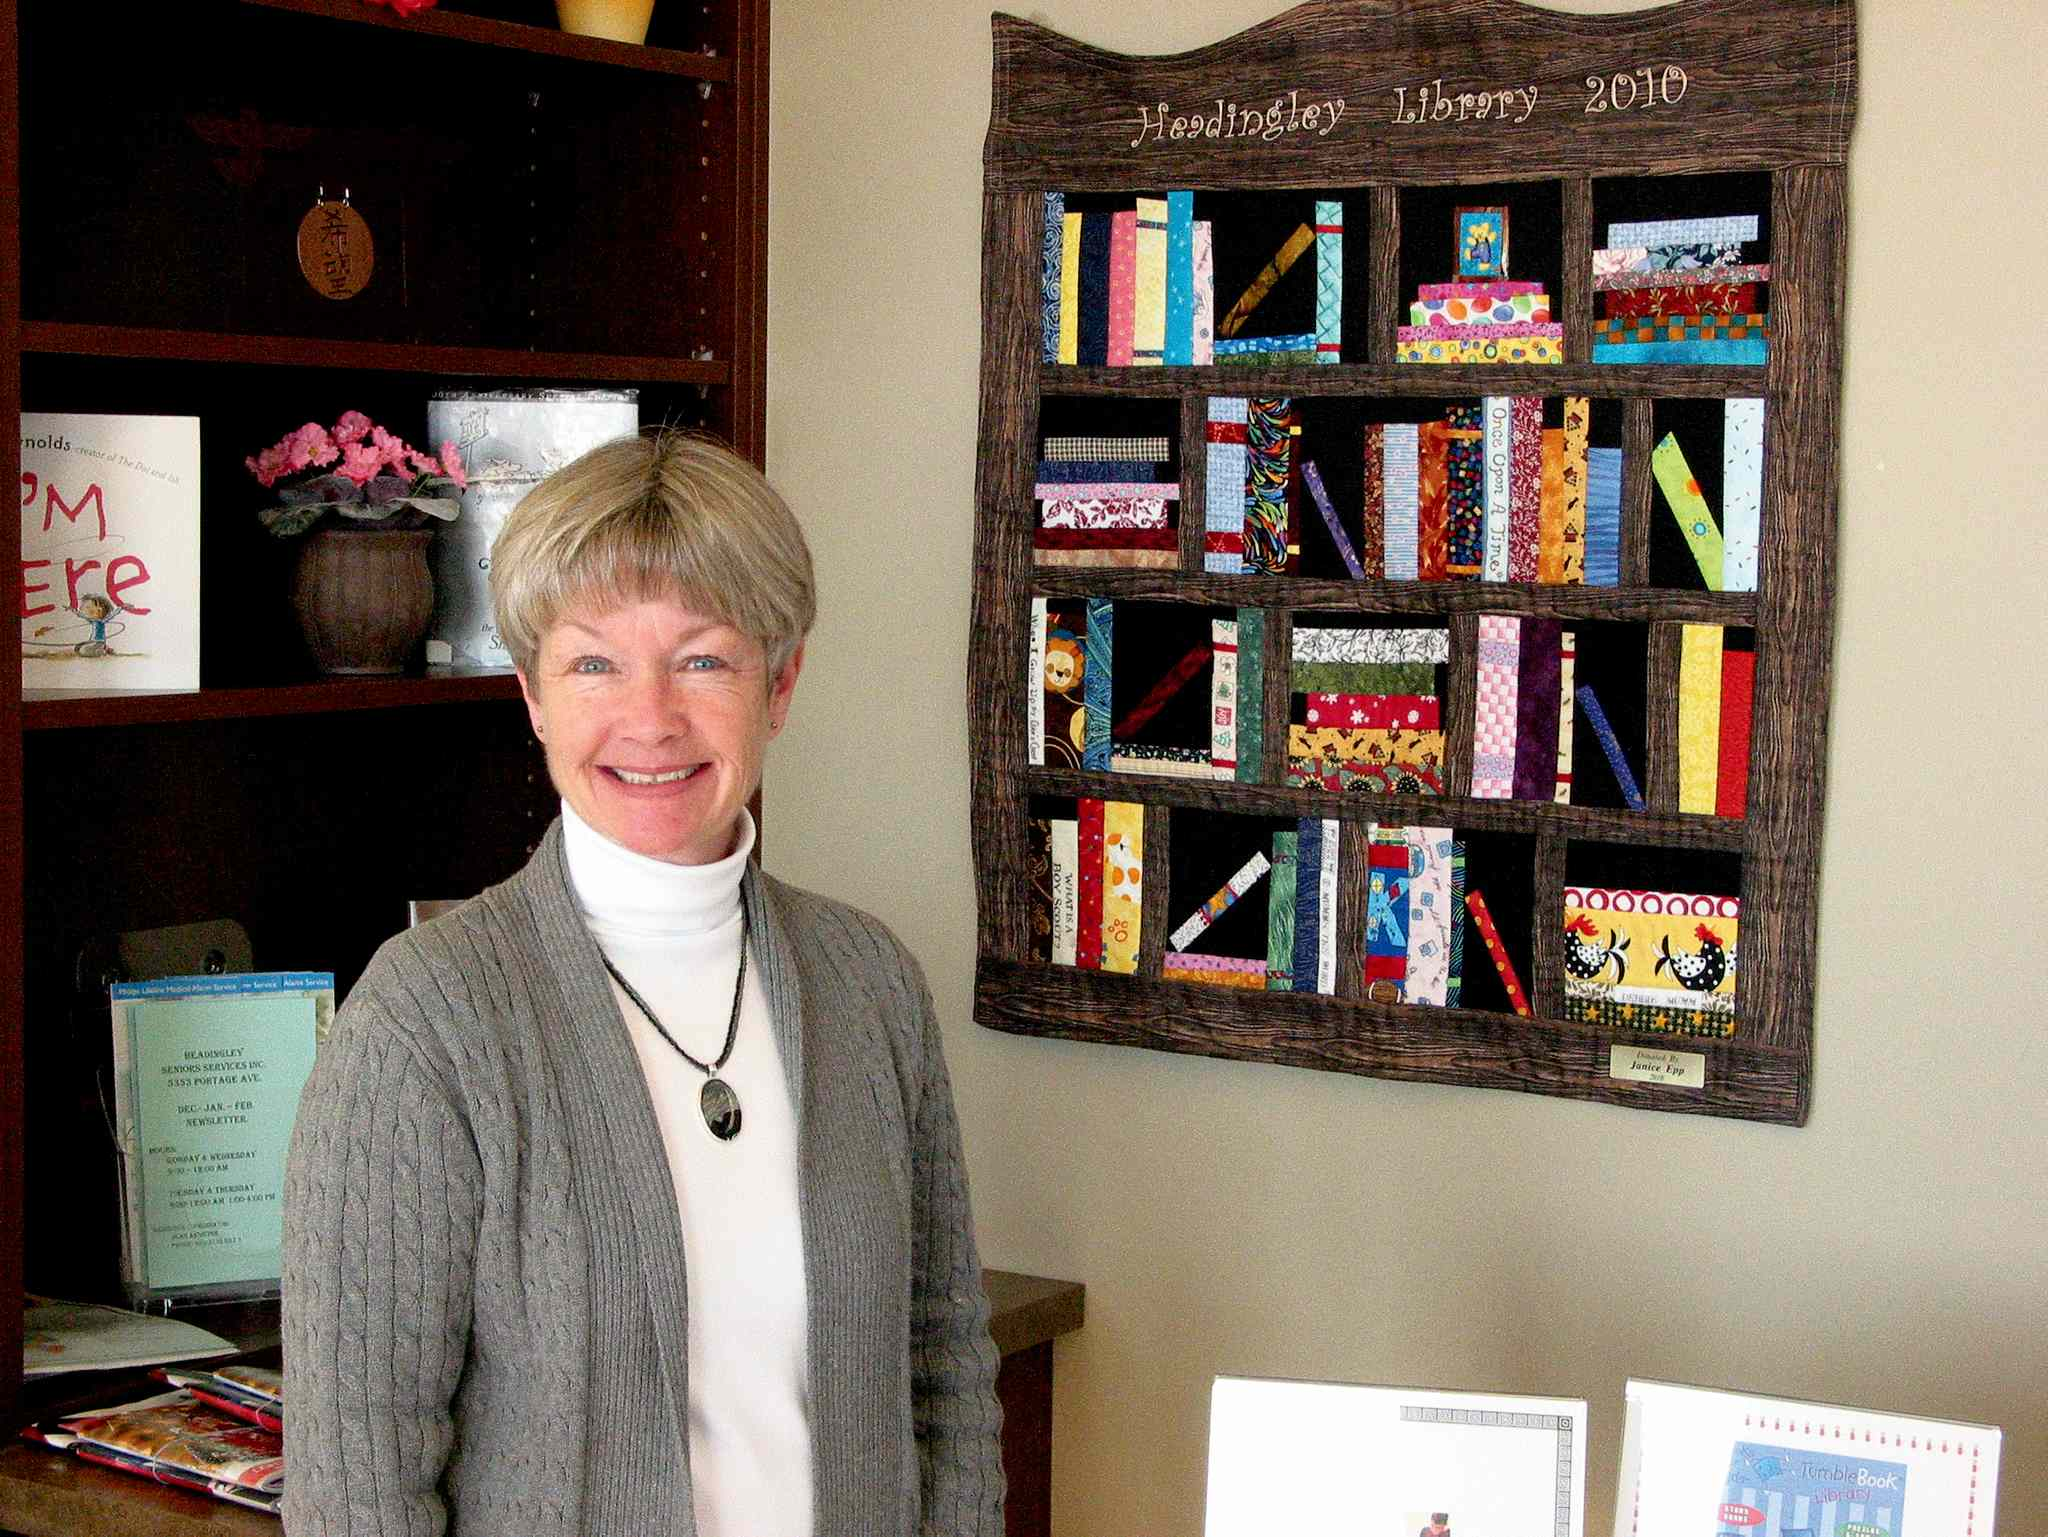 Joan Spice, head librarian, and the Friends of the Library members are preparing for a book sale on Nov. 8 and 9 at the Headingley Municipal Library.